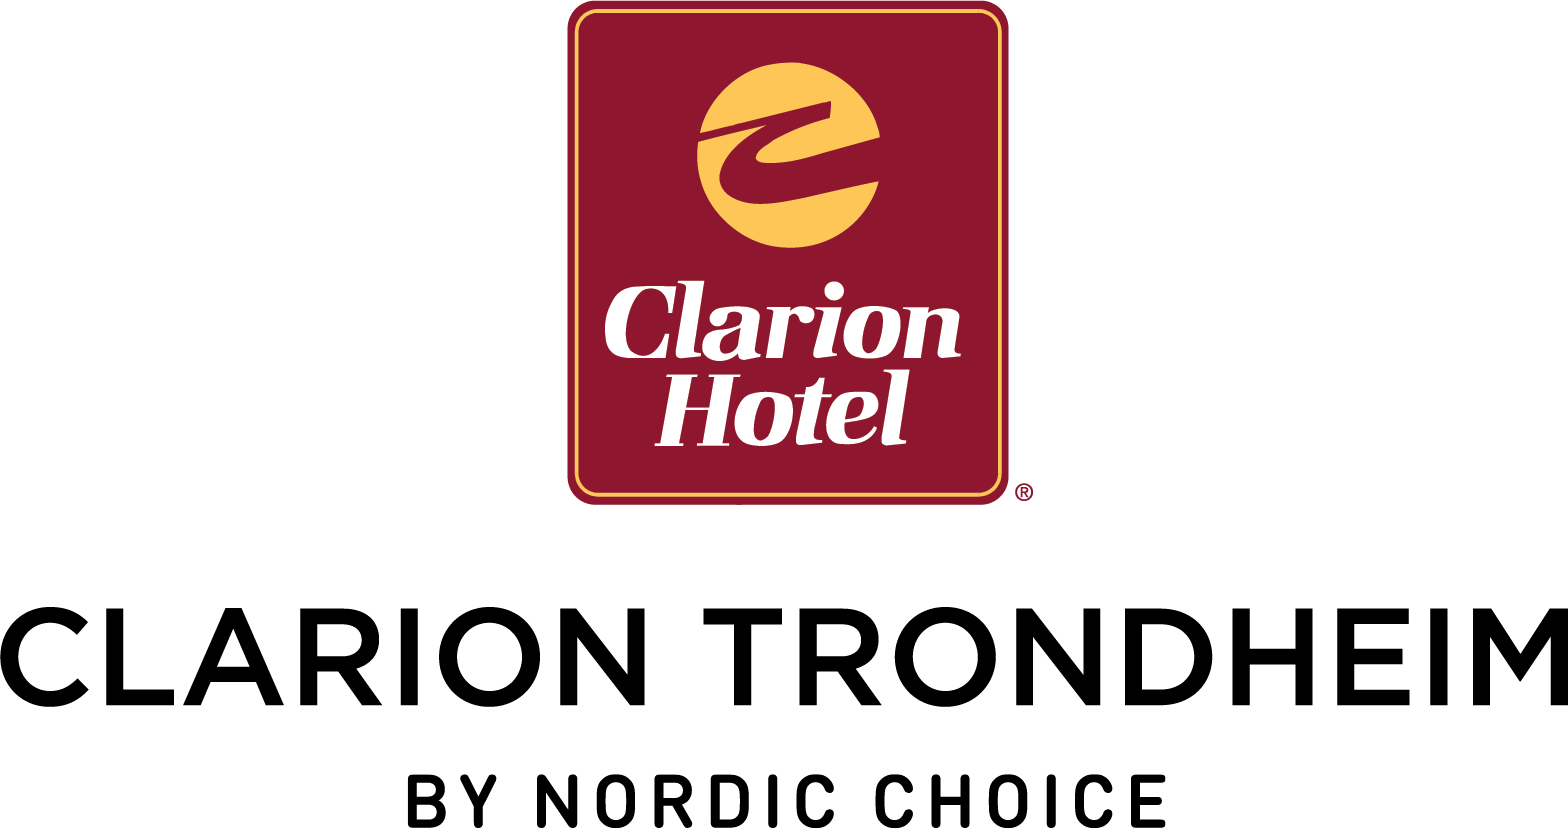 https://www.nordicchoicehotels.no/hotell/clarion/